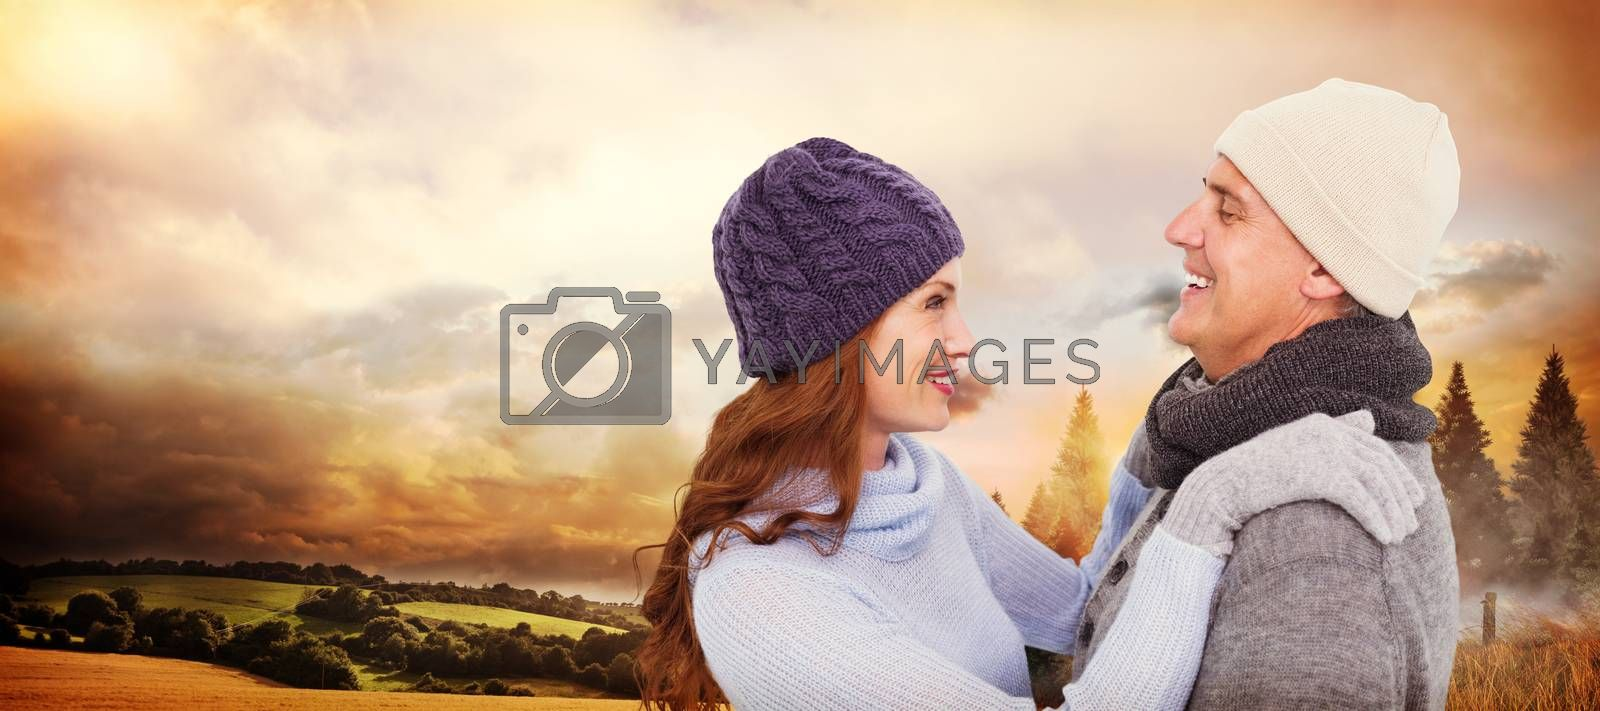 Happy couple in warm clothing against country scene